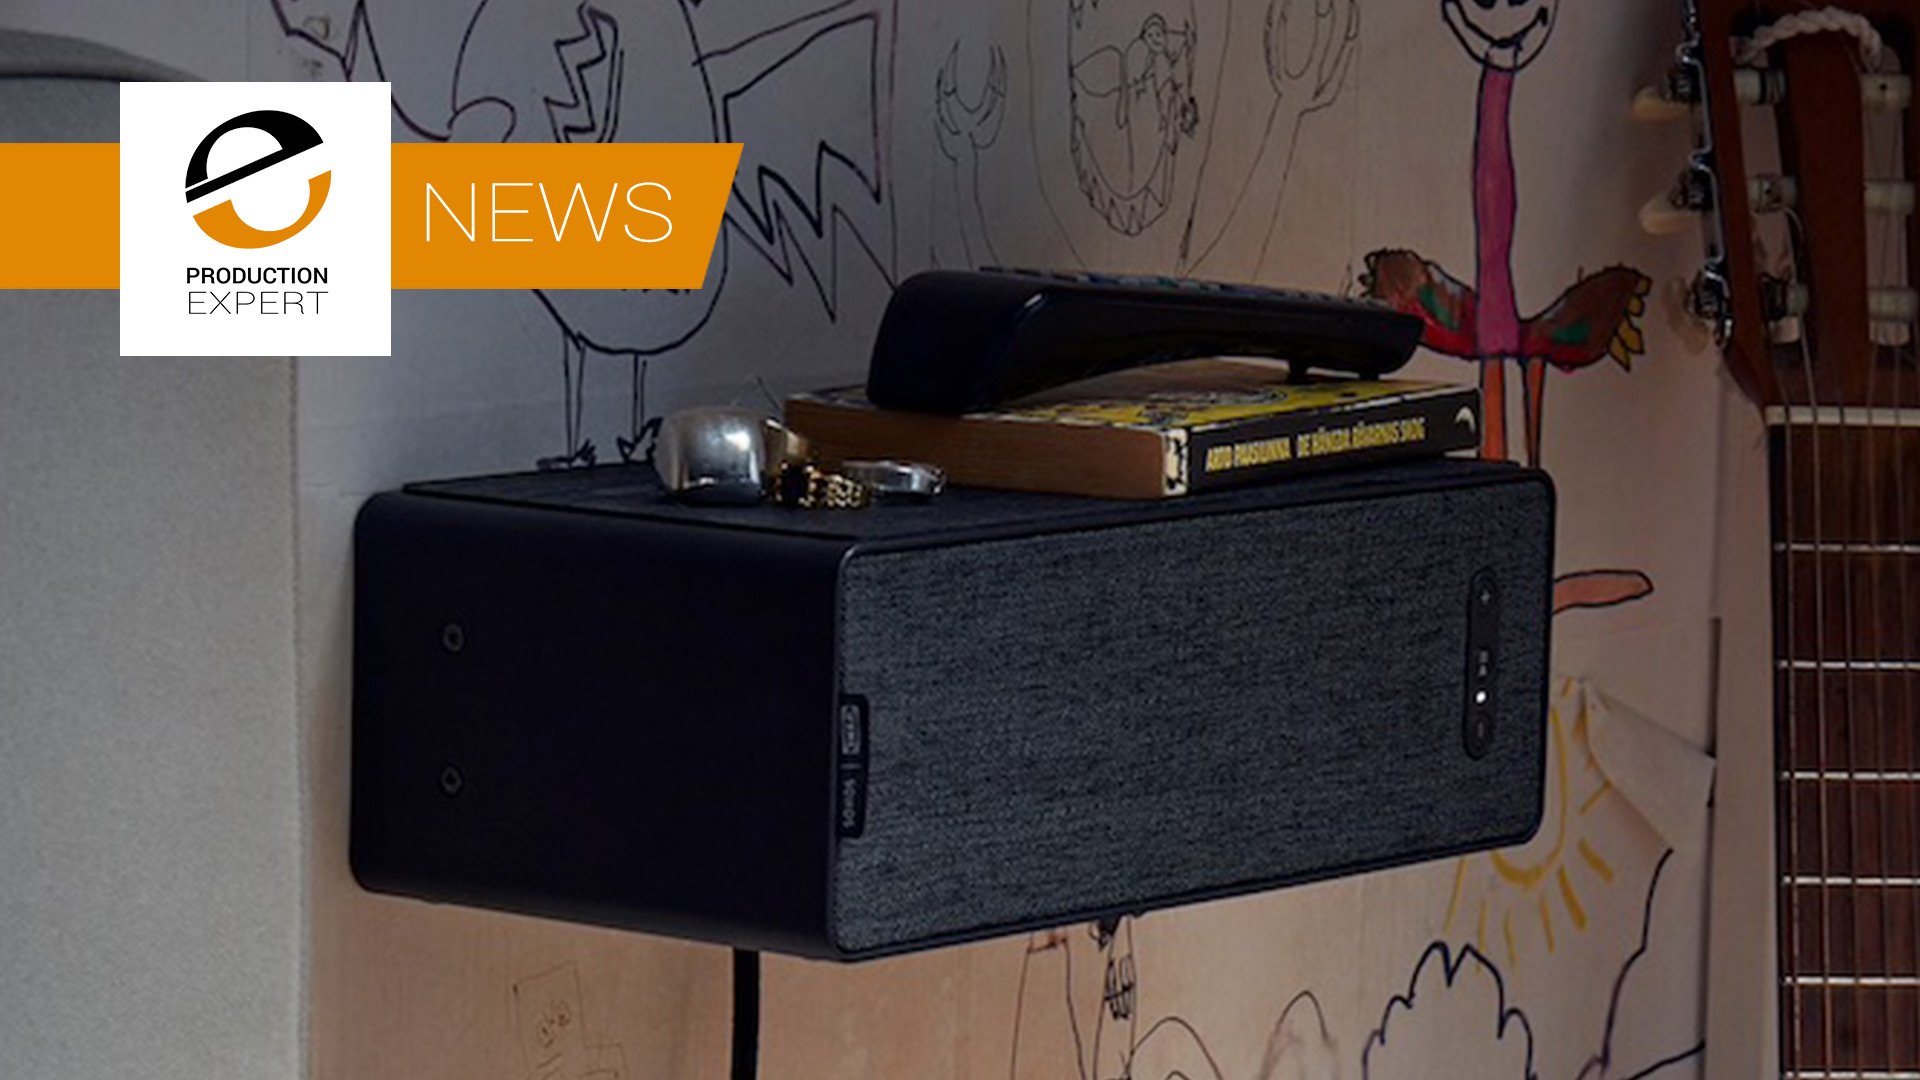 The IKEA SONOS Speaker Is Becoming And Overnight Sensation - The New Speakers That Are Selling Out